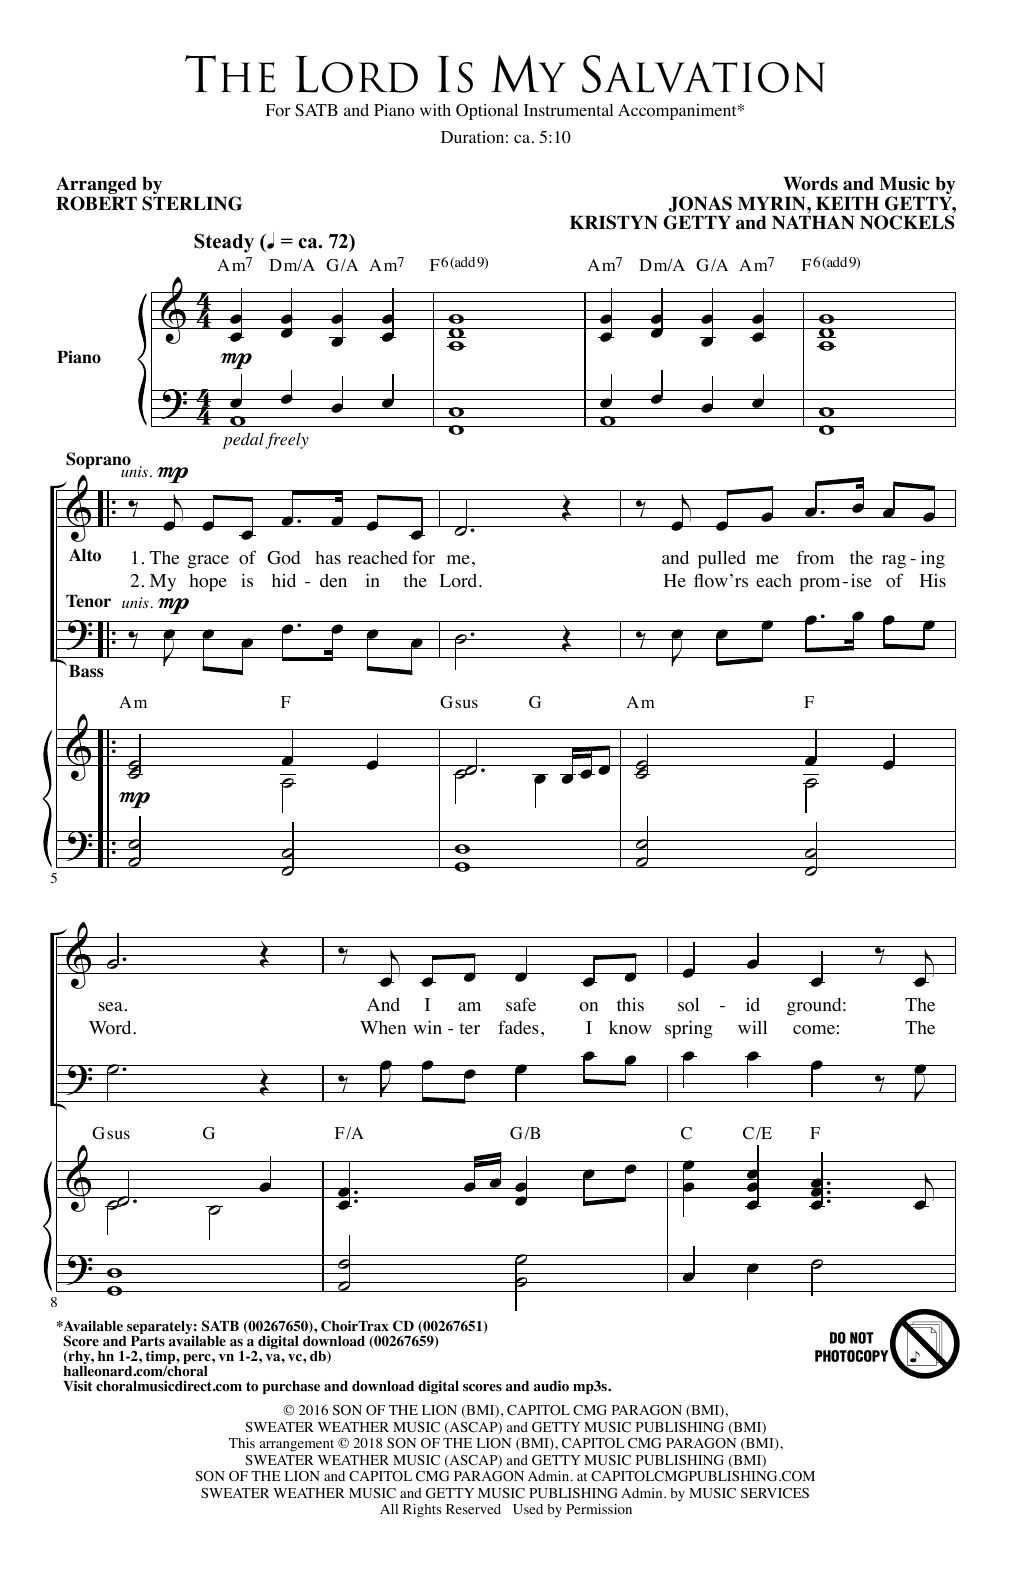 The Lord Is My Salvation (SATB Choir)